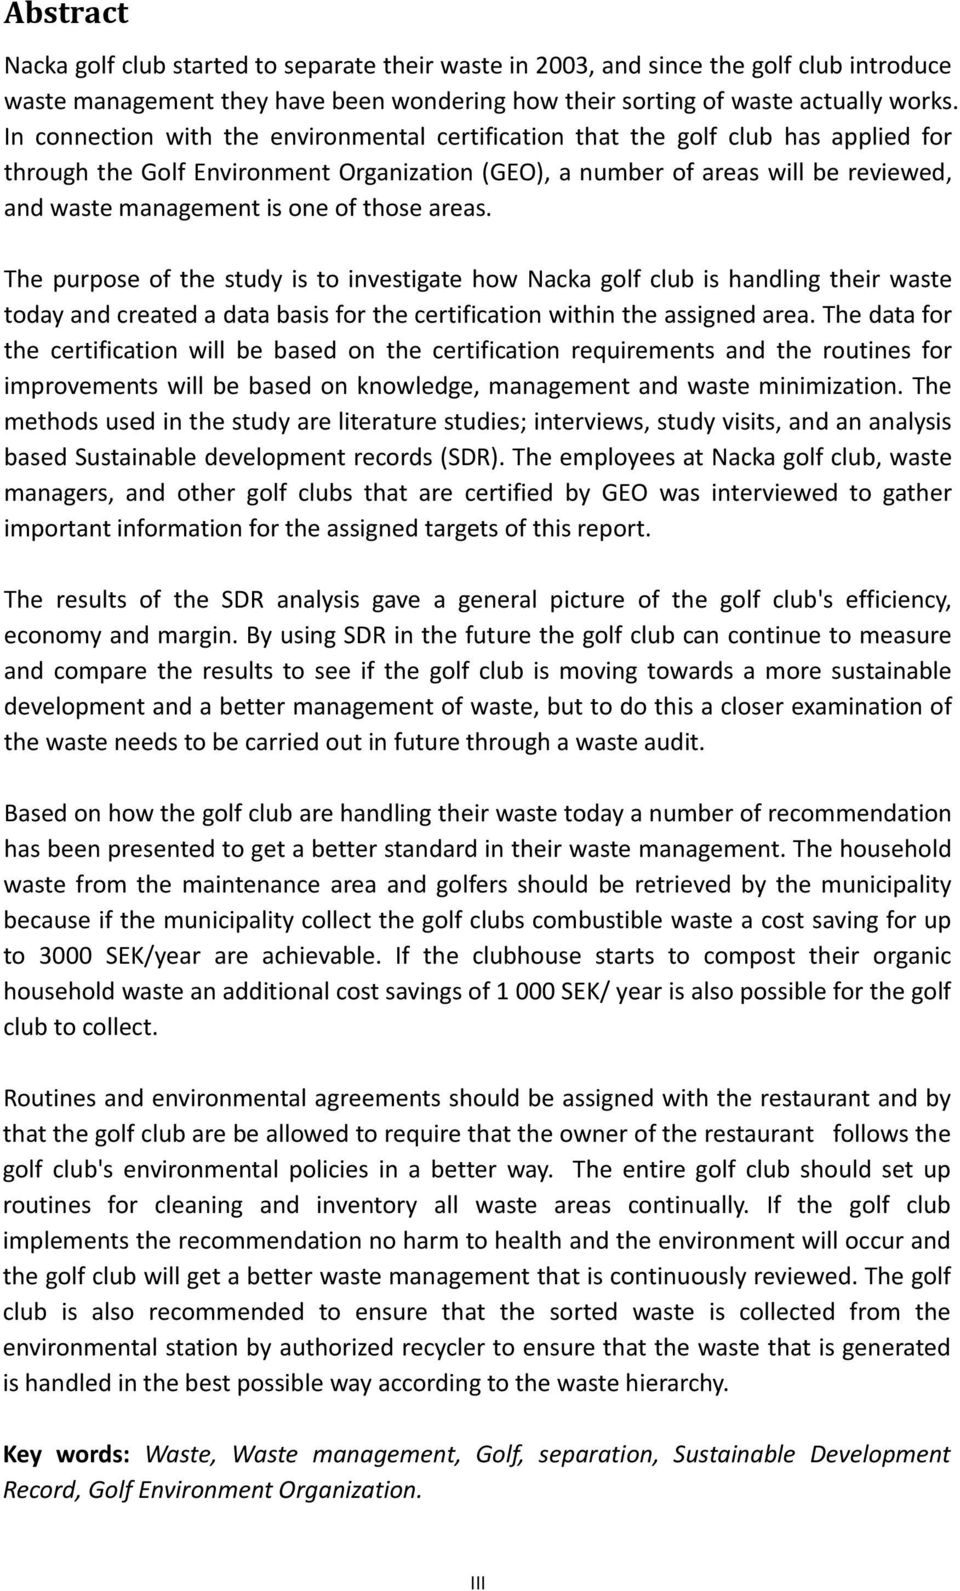 of those areas. The purpose of the study is to investigate how Nacka golf club is handling their waste today and created a data basis for the certification within the assigned area.